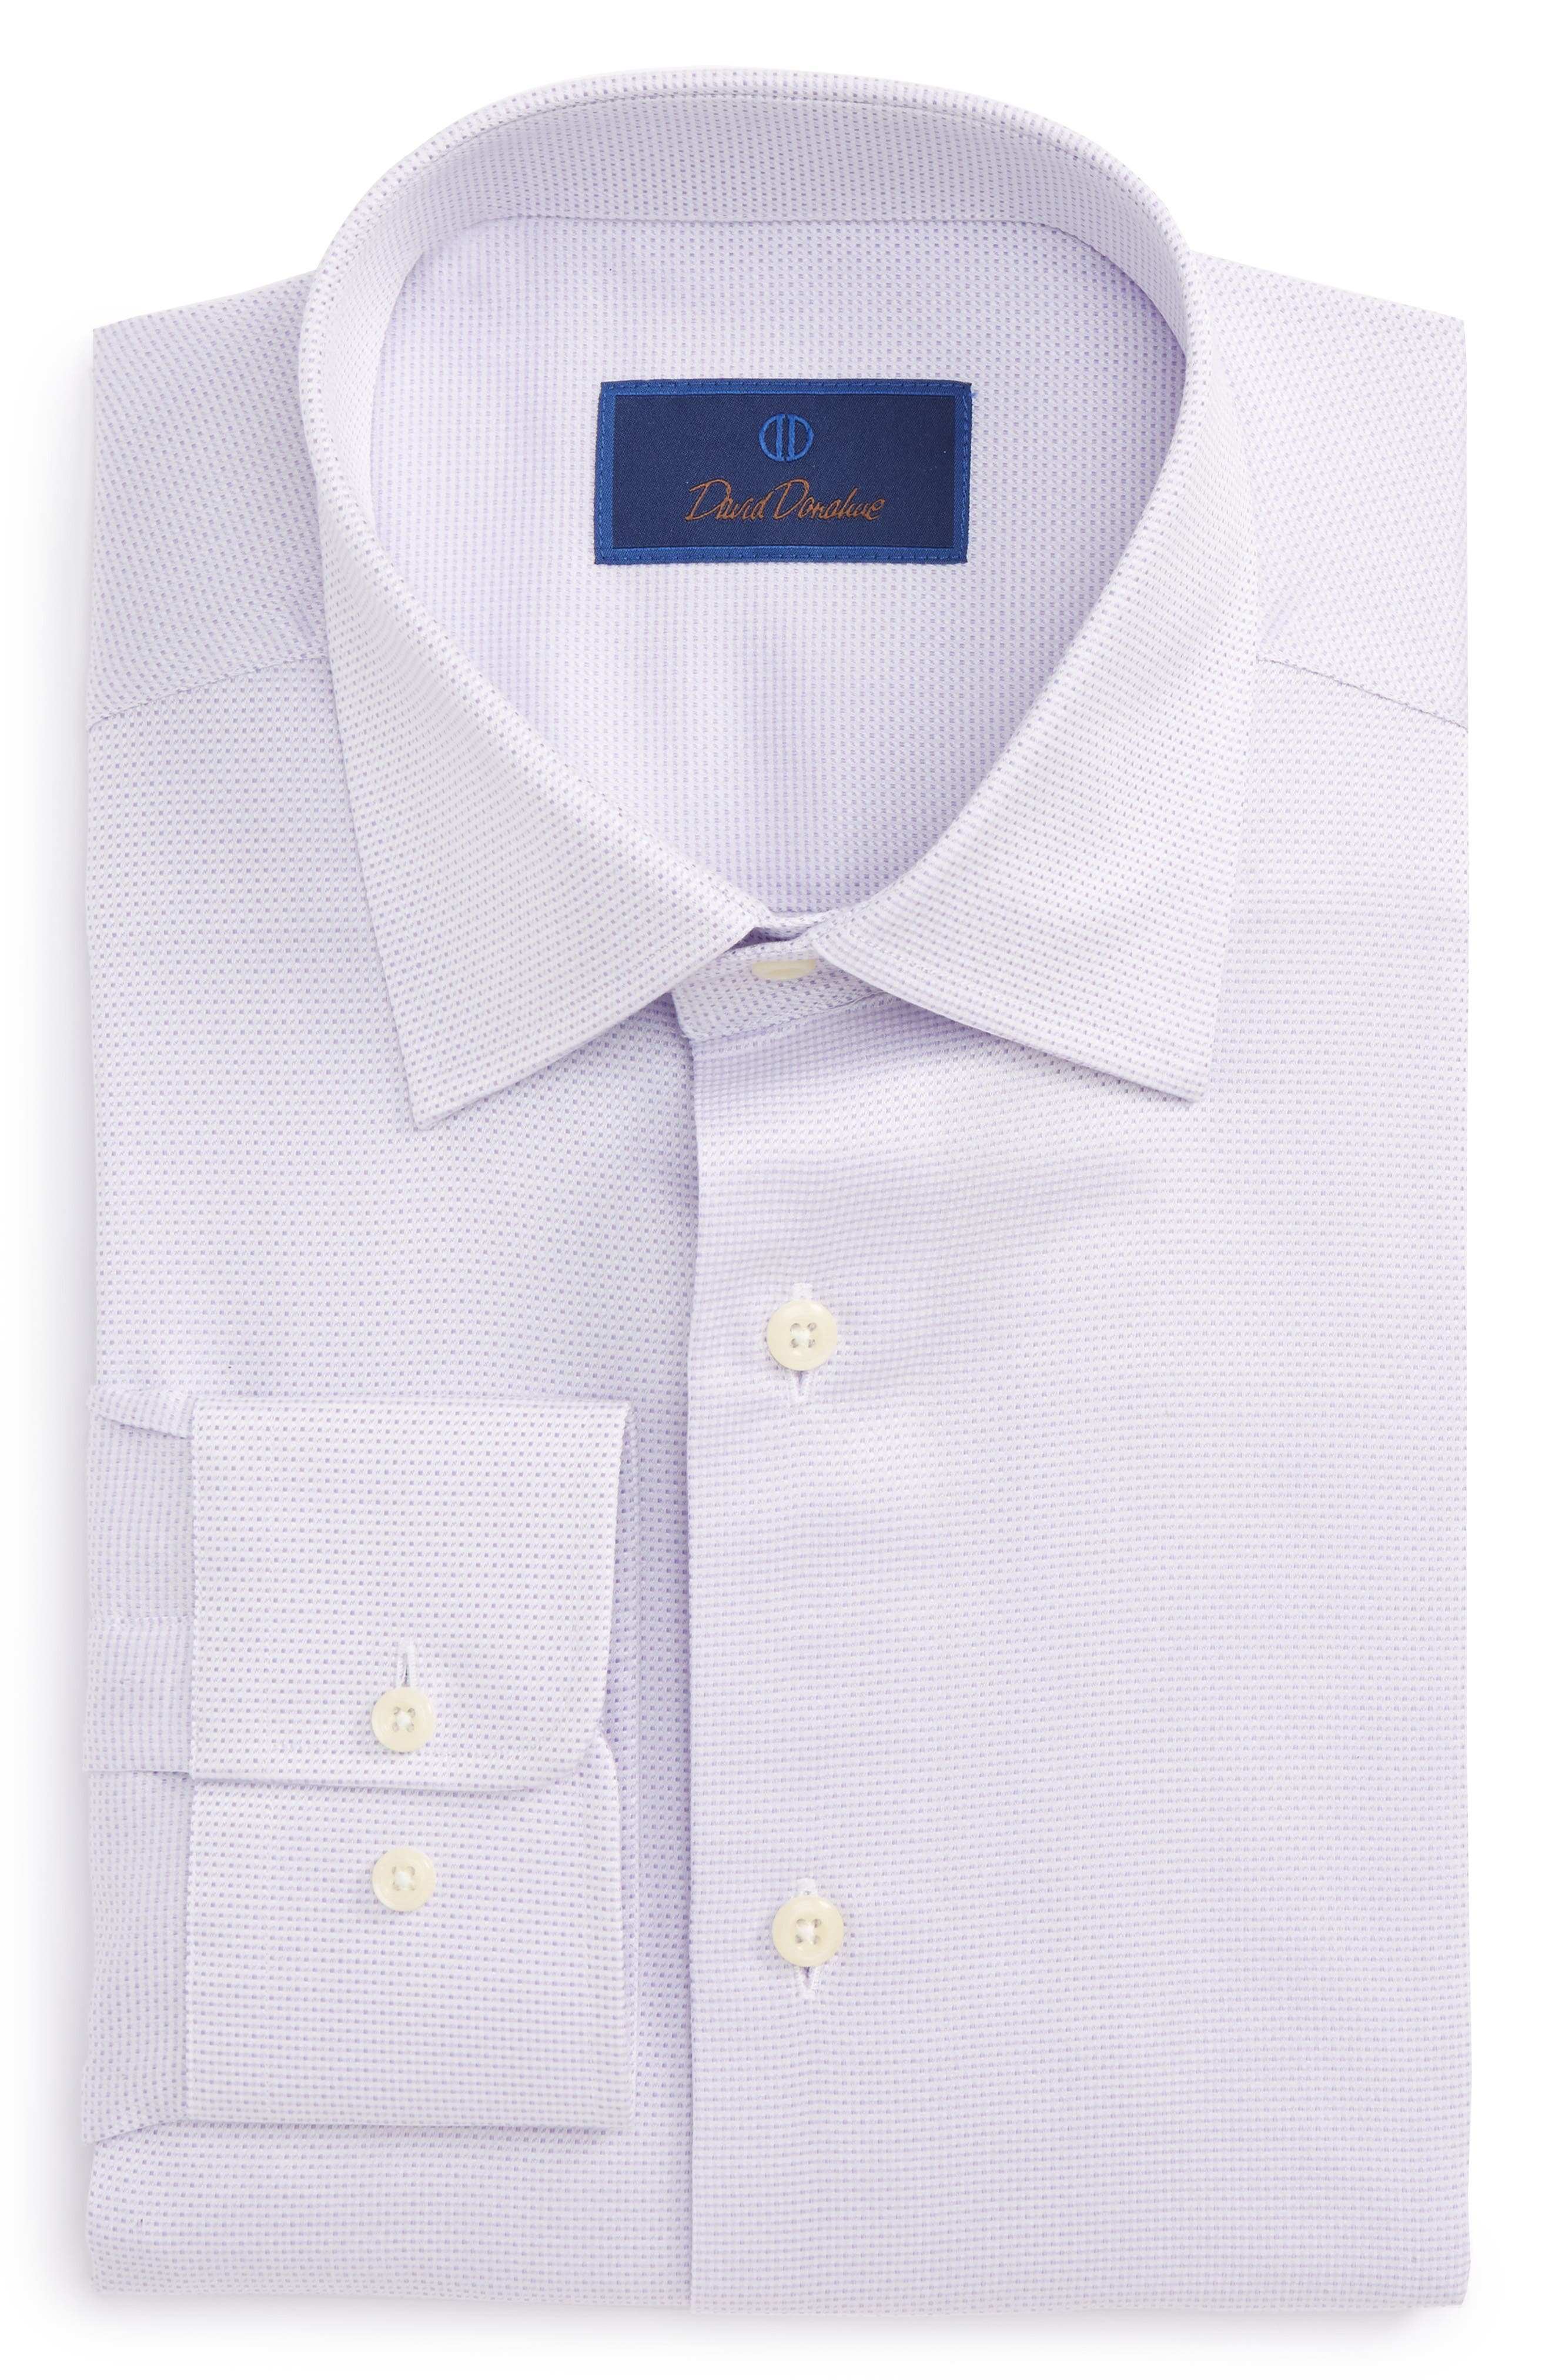 Regular Fit Solid Dress Shirt,                         Main,                         color, Lilac